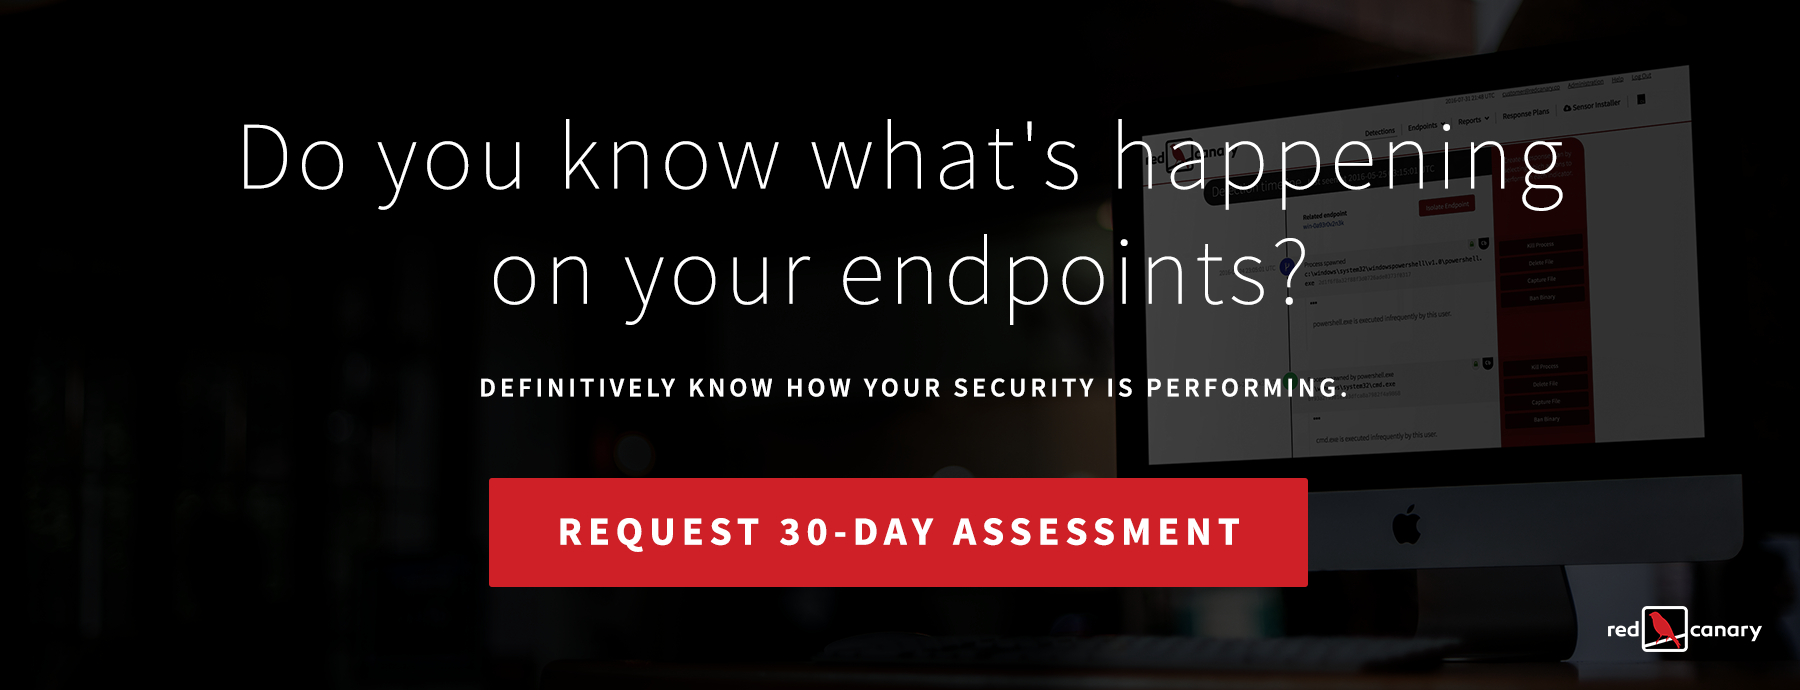 Red Canary 30 Day Endpoint Assessment